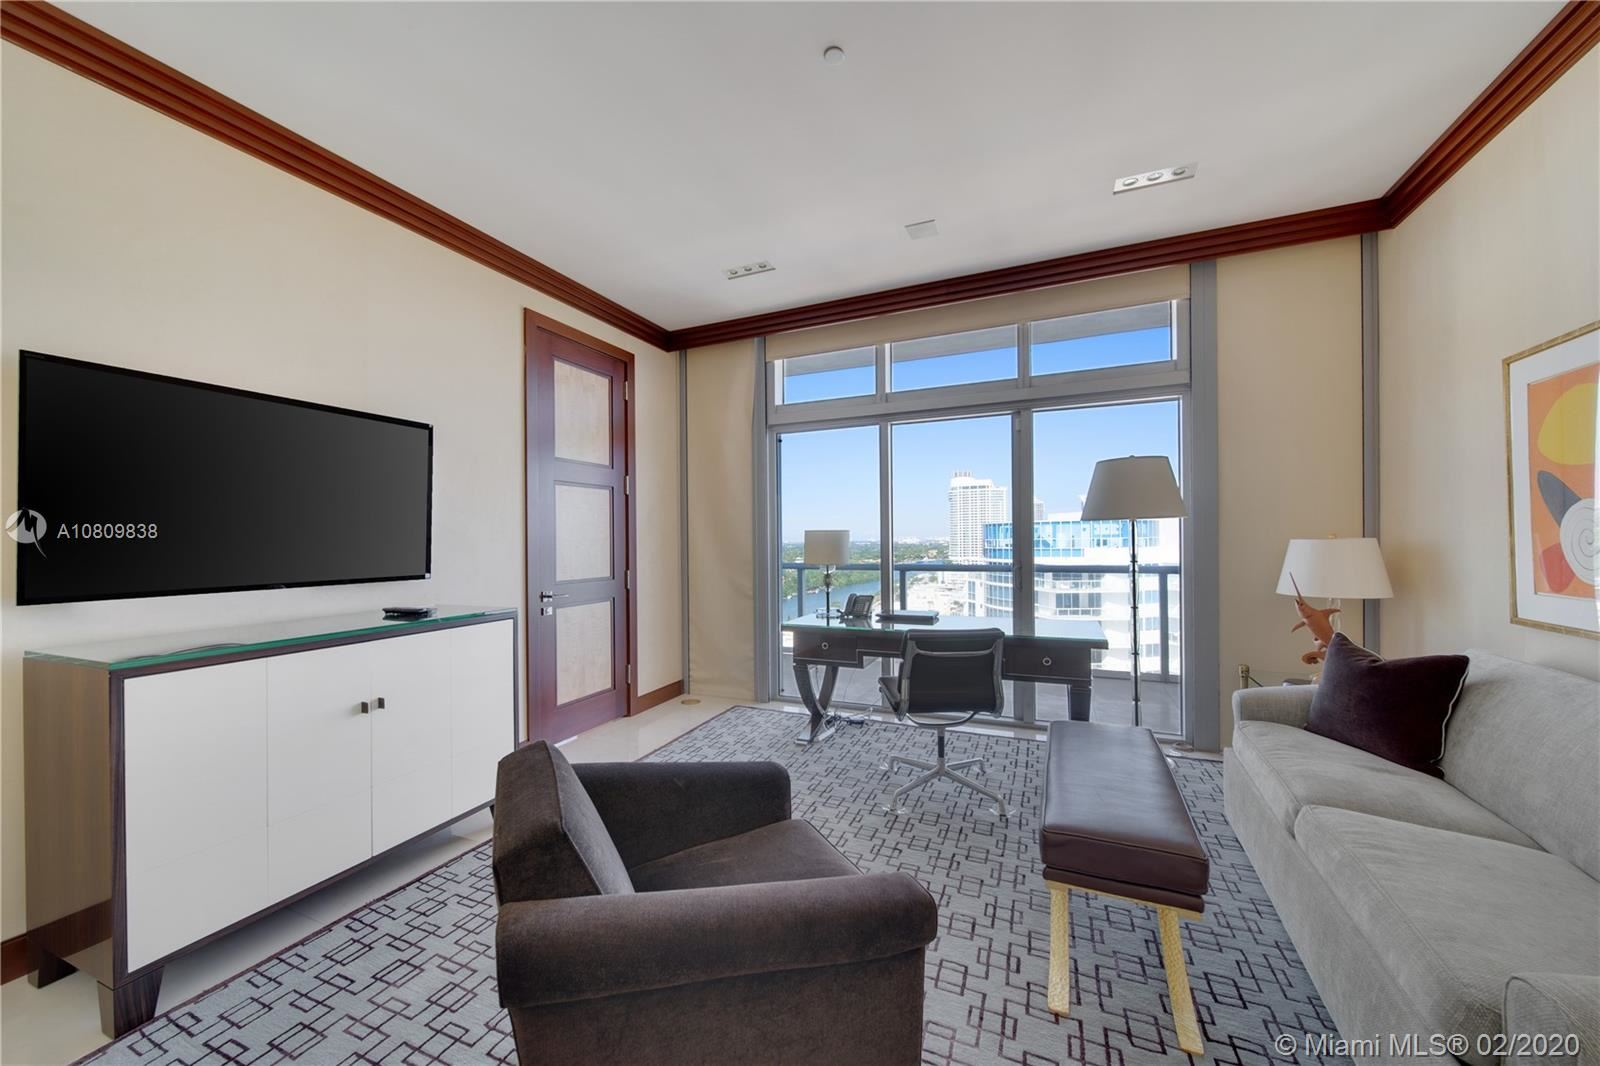 Photo 24 of Listing MLS a10809838 in 3737 Collins Ave #PH-4 Miami Beach FL 33140